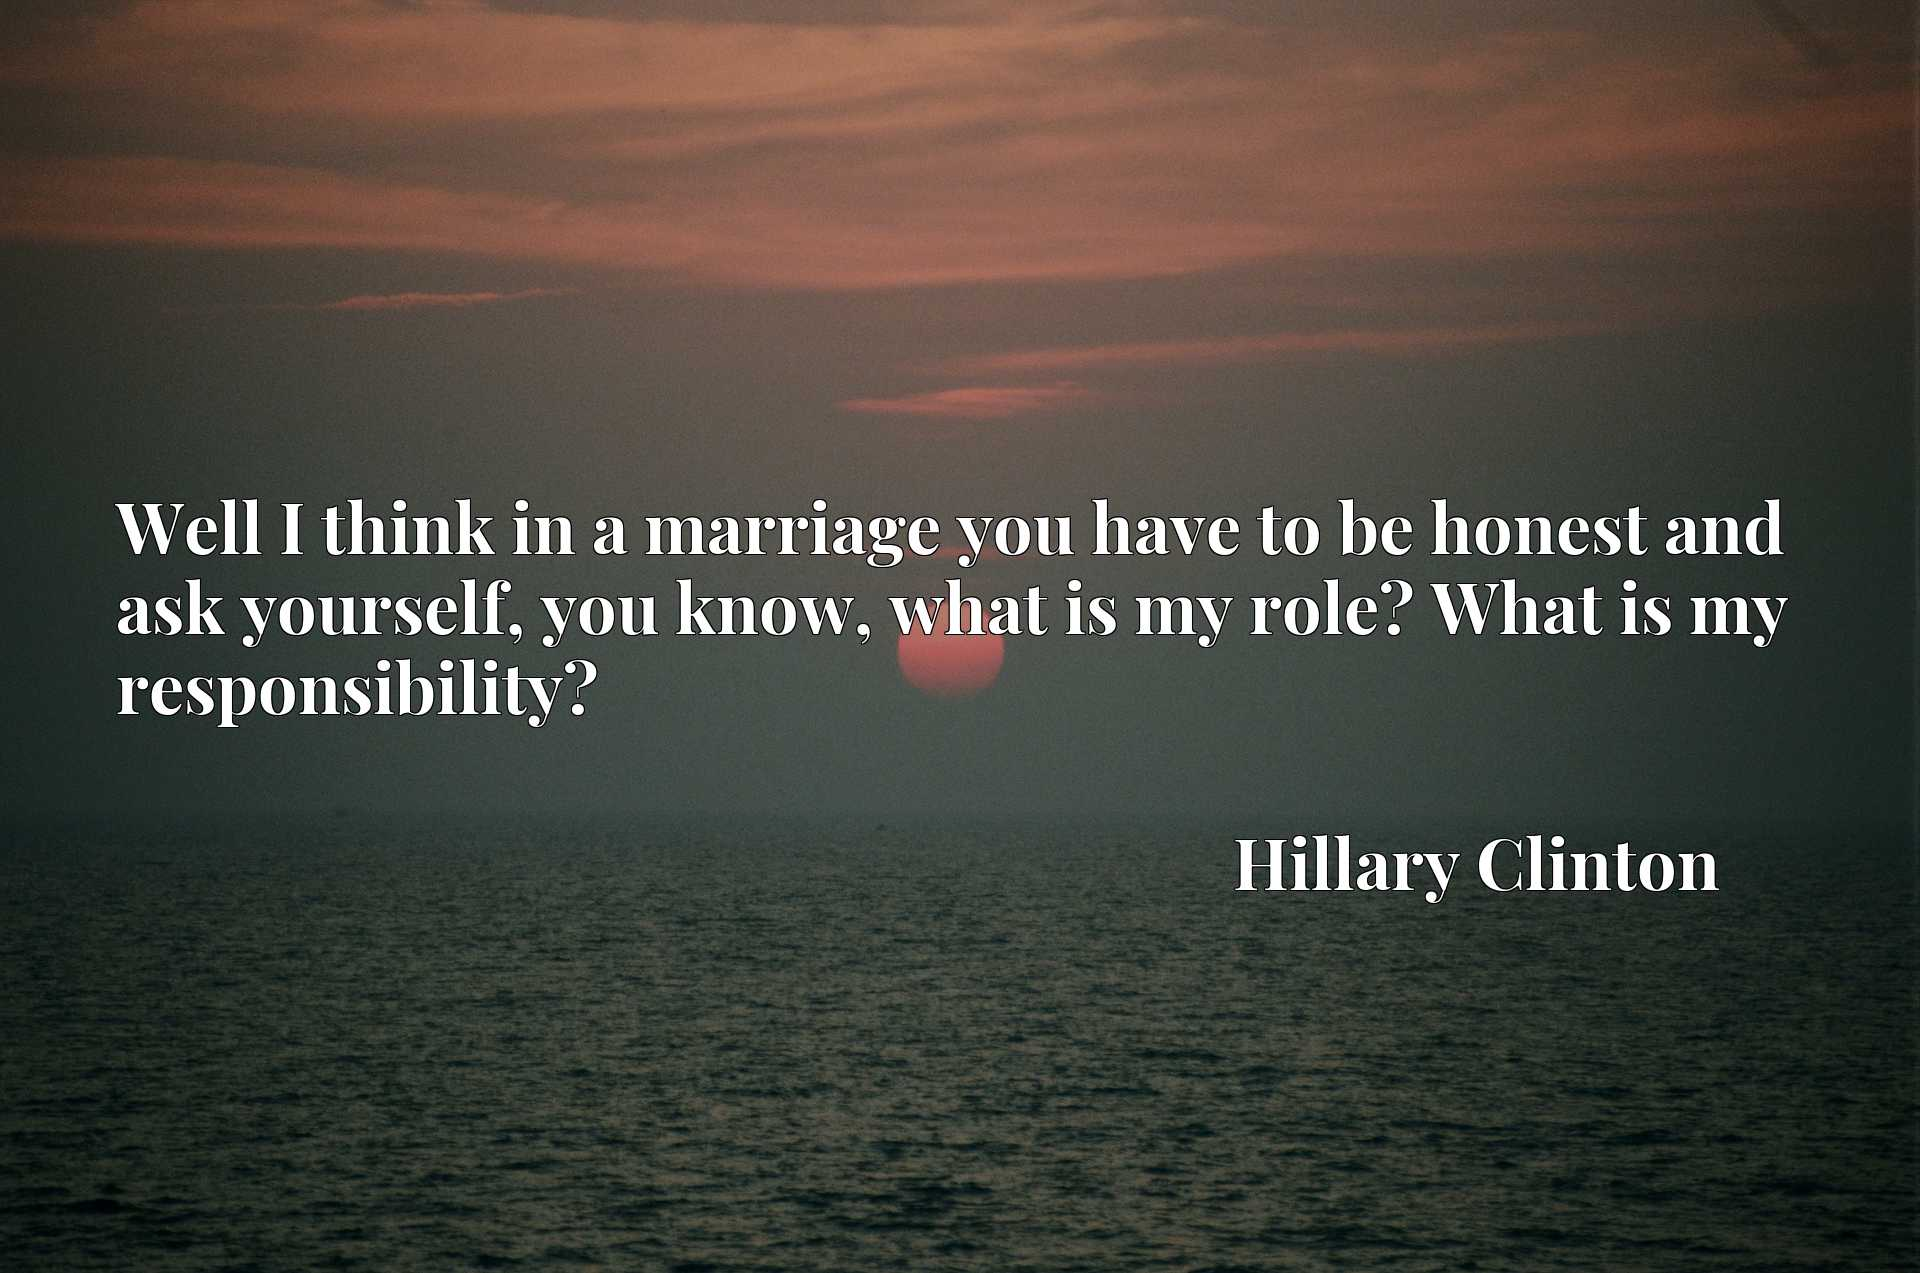 Quote Picture :Well I think in a marriage you have to be honest and ask yourself, you know, what is my role? What is my responsibility?